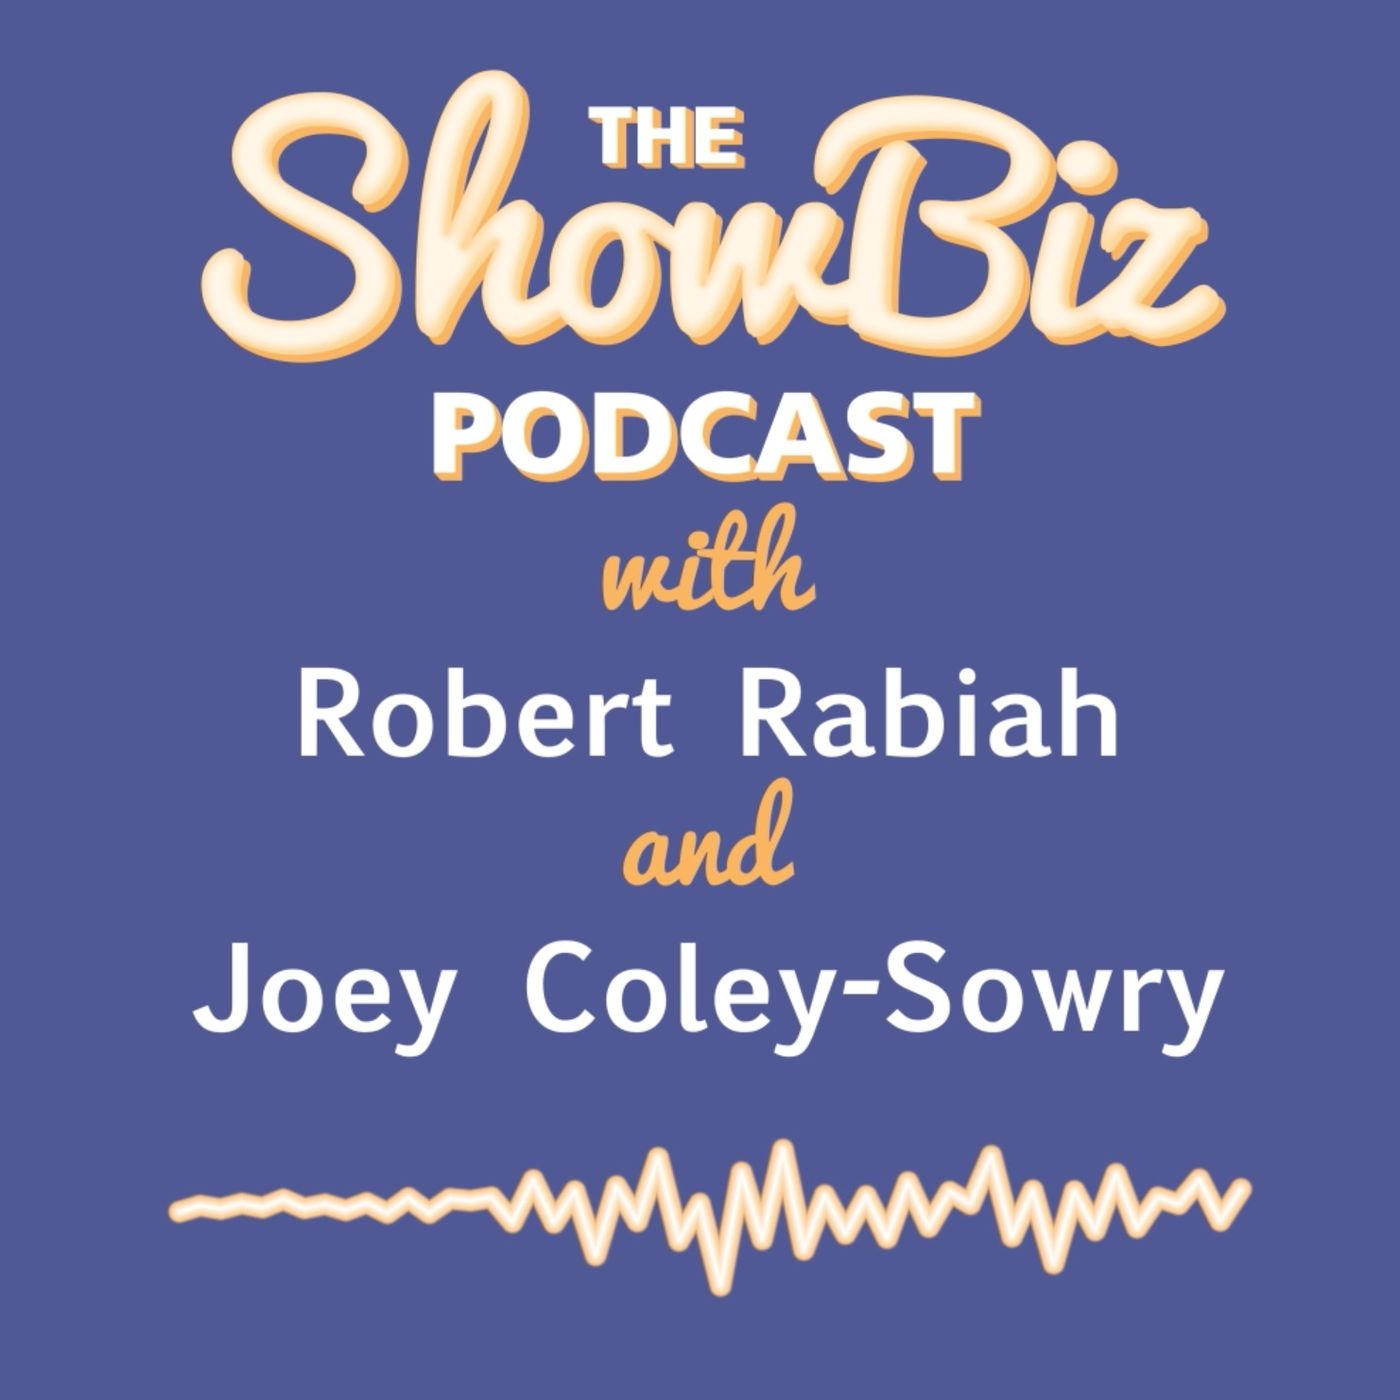 Episode 1 - Robert Rabiah pushes the narrative - The ShowBiz Podcast with Robert Rabiah and Joey Coley-Sowry